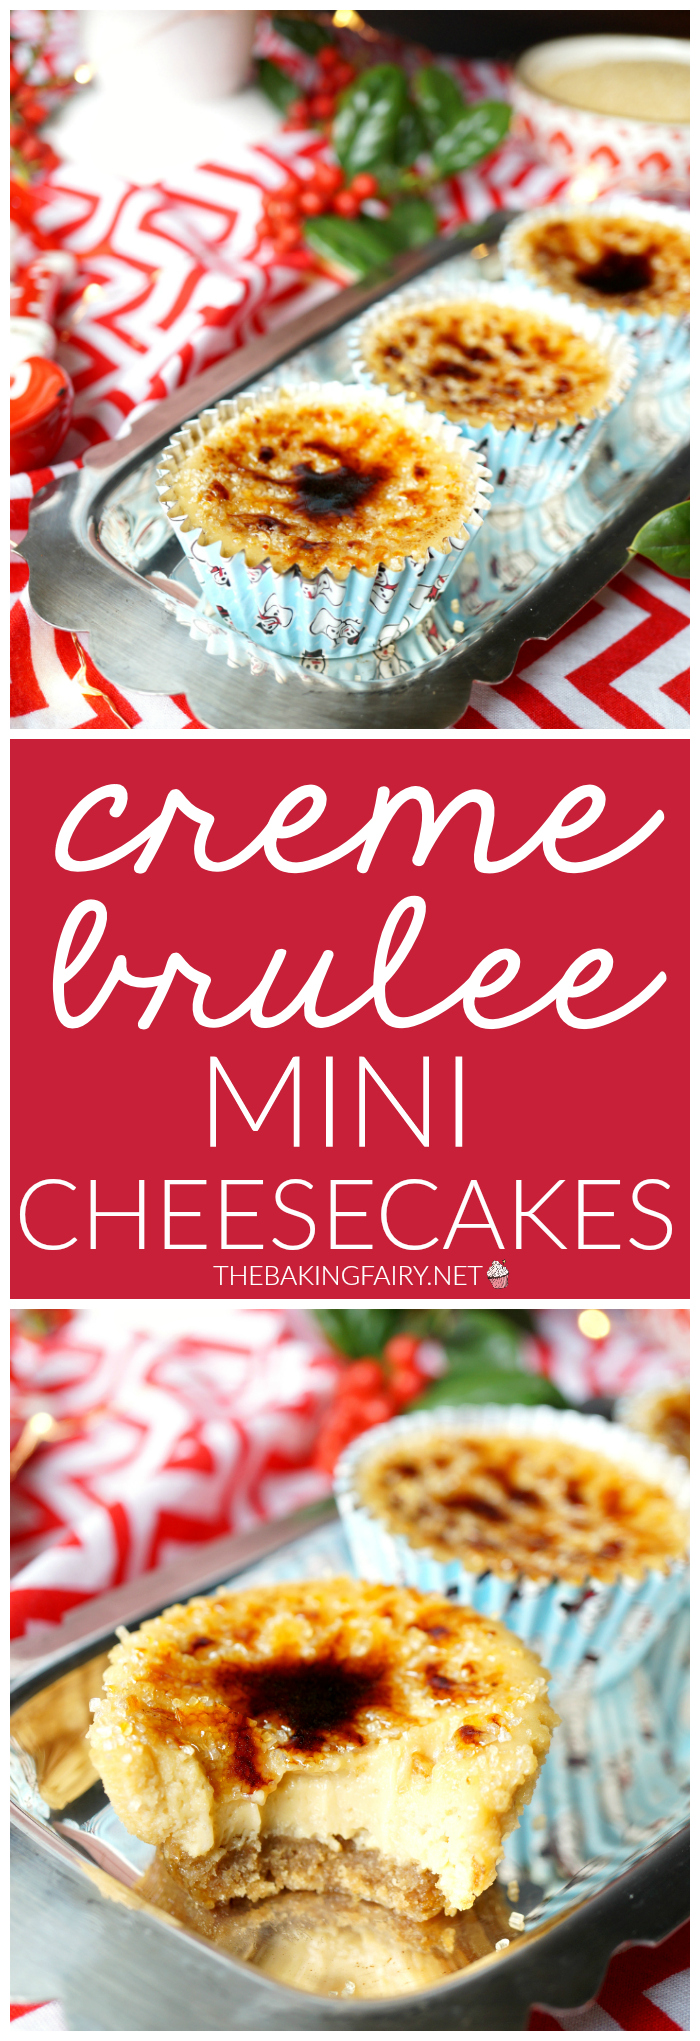 creme brûlée mini cheesecakes | The Baking Fairy #ad #PhillyMakesTheHolidays #ItMustBePhilly #RecipeShare @spreadphilly